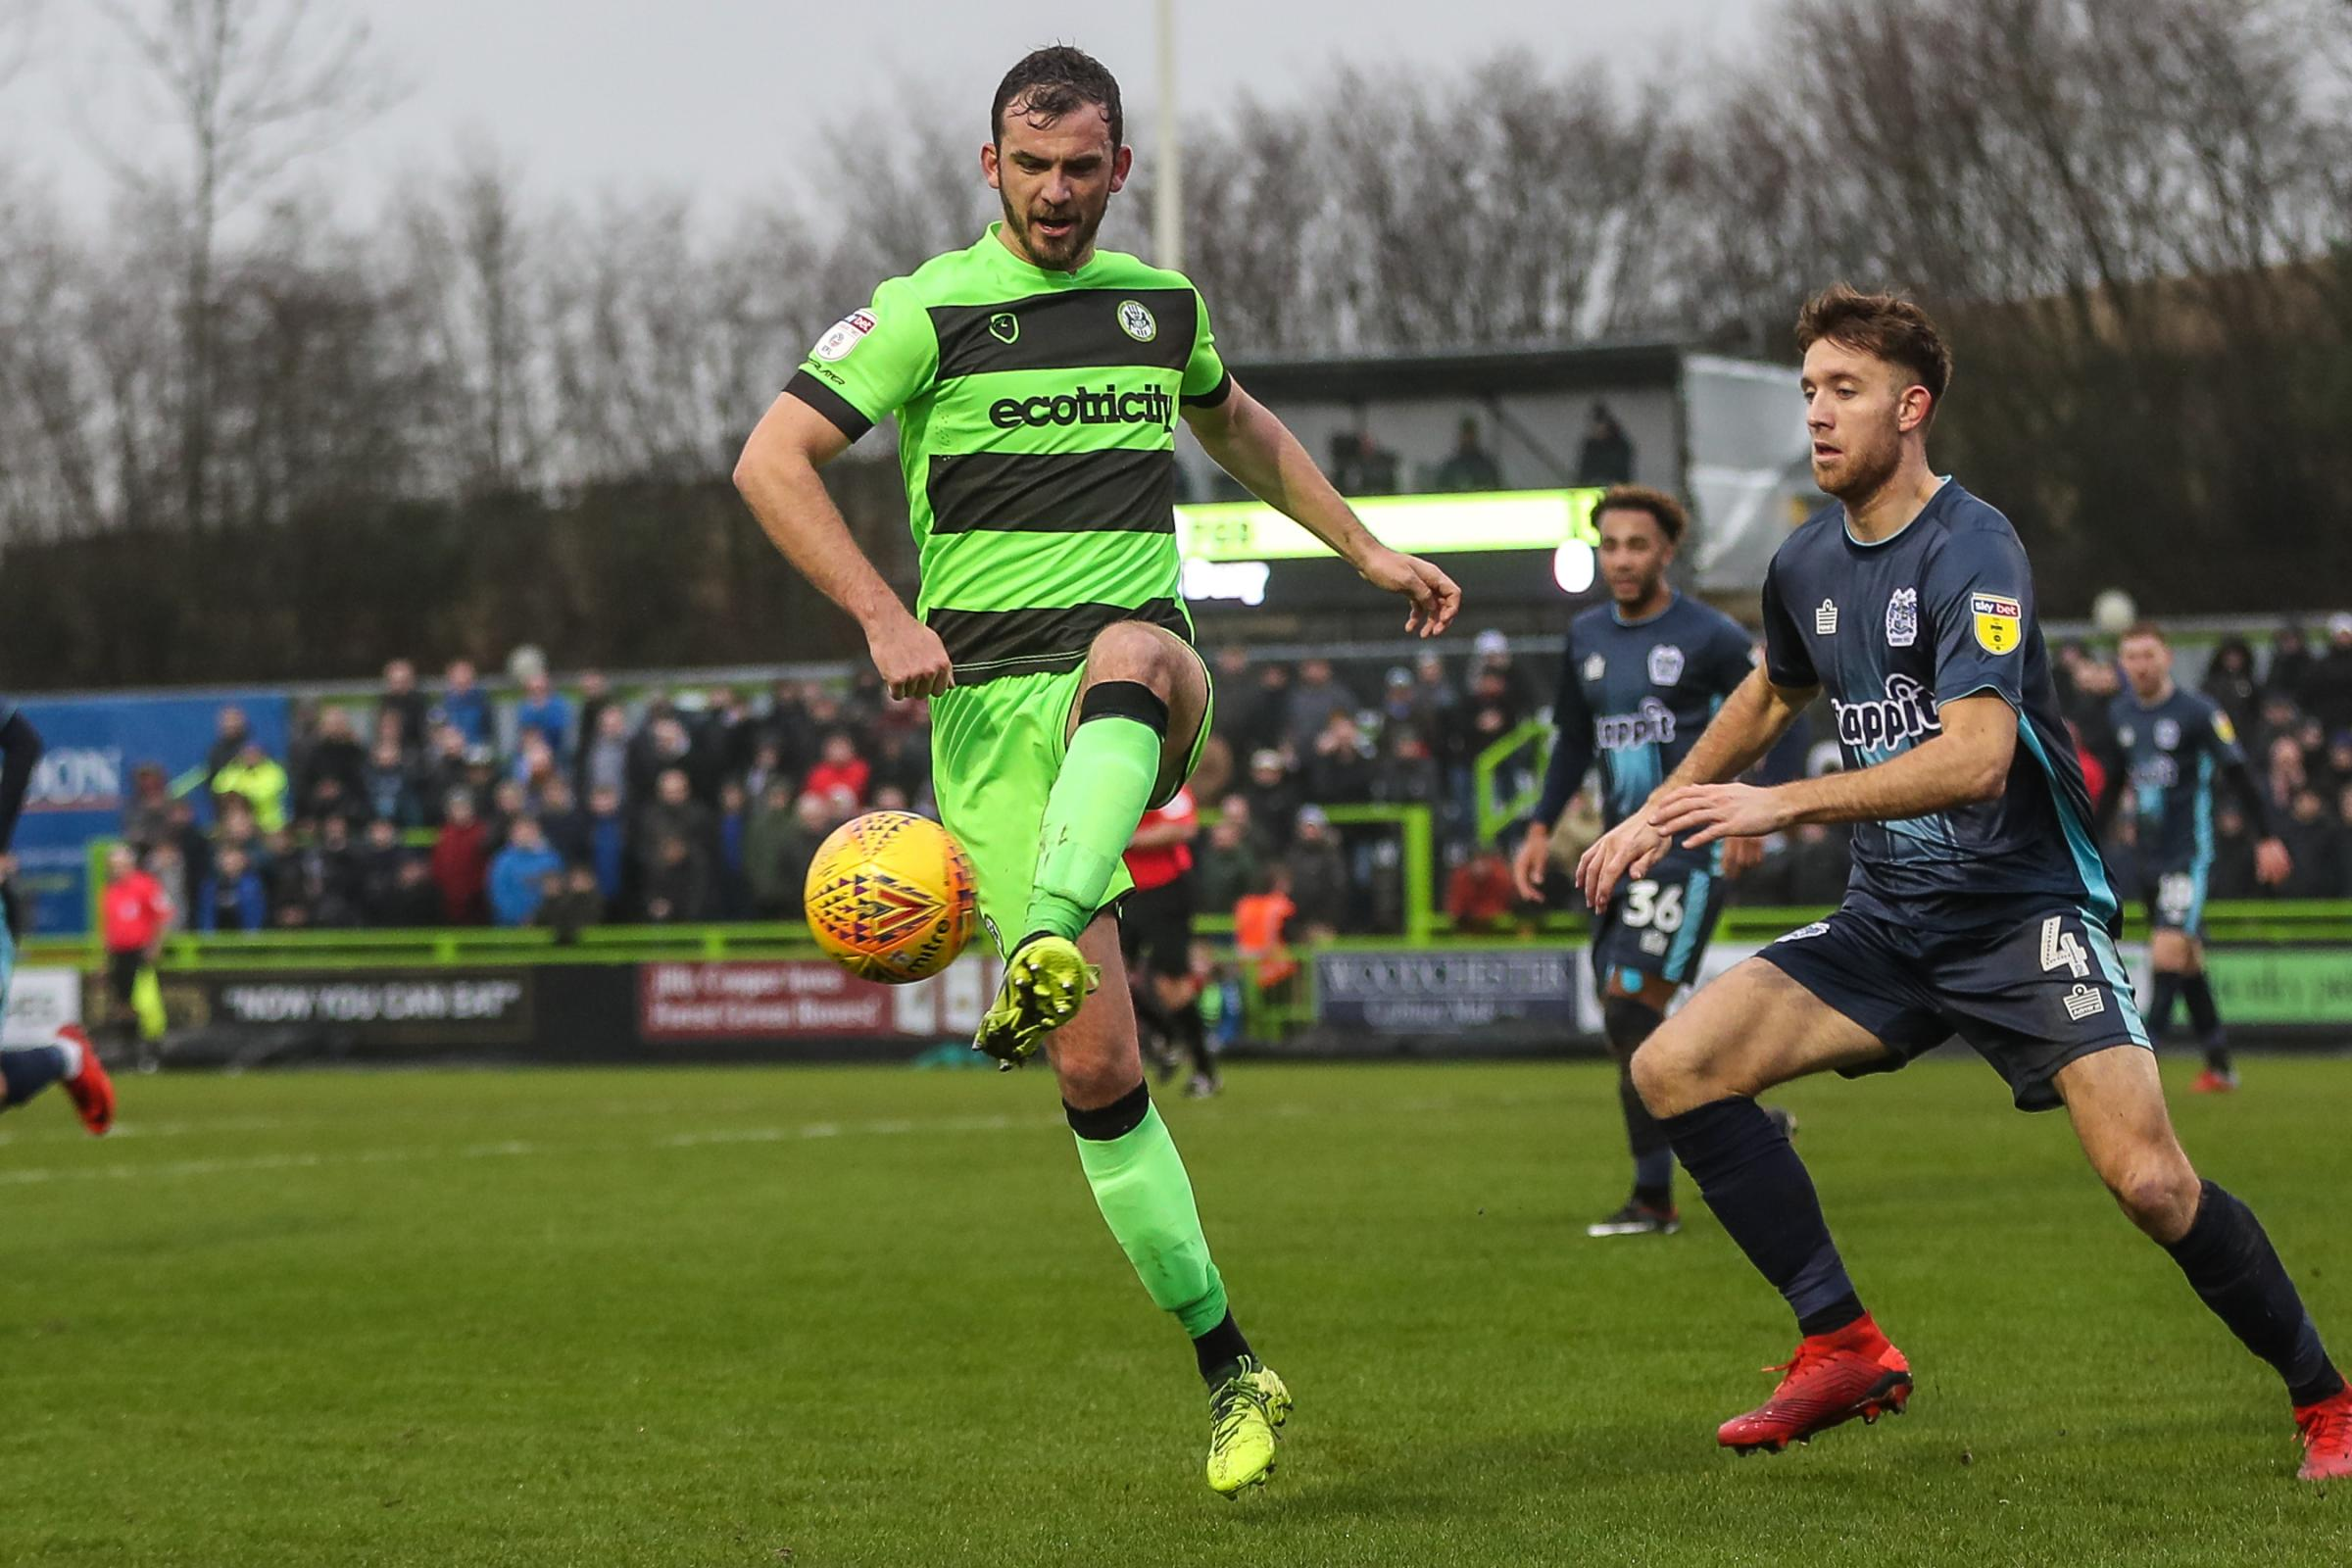 Forest Green Rovers Gavin Gunning(16) during the EFL Sky Bet League 2 match between Forest Green Rovers and Bury at the New Lawn, Forest Green, United Kingdom on 19 January 2019.